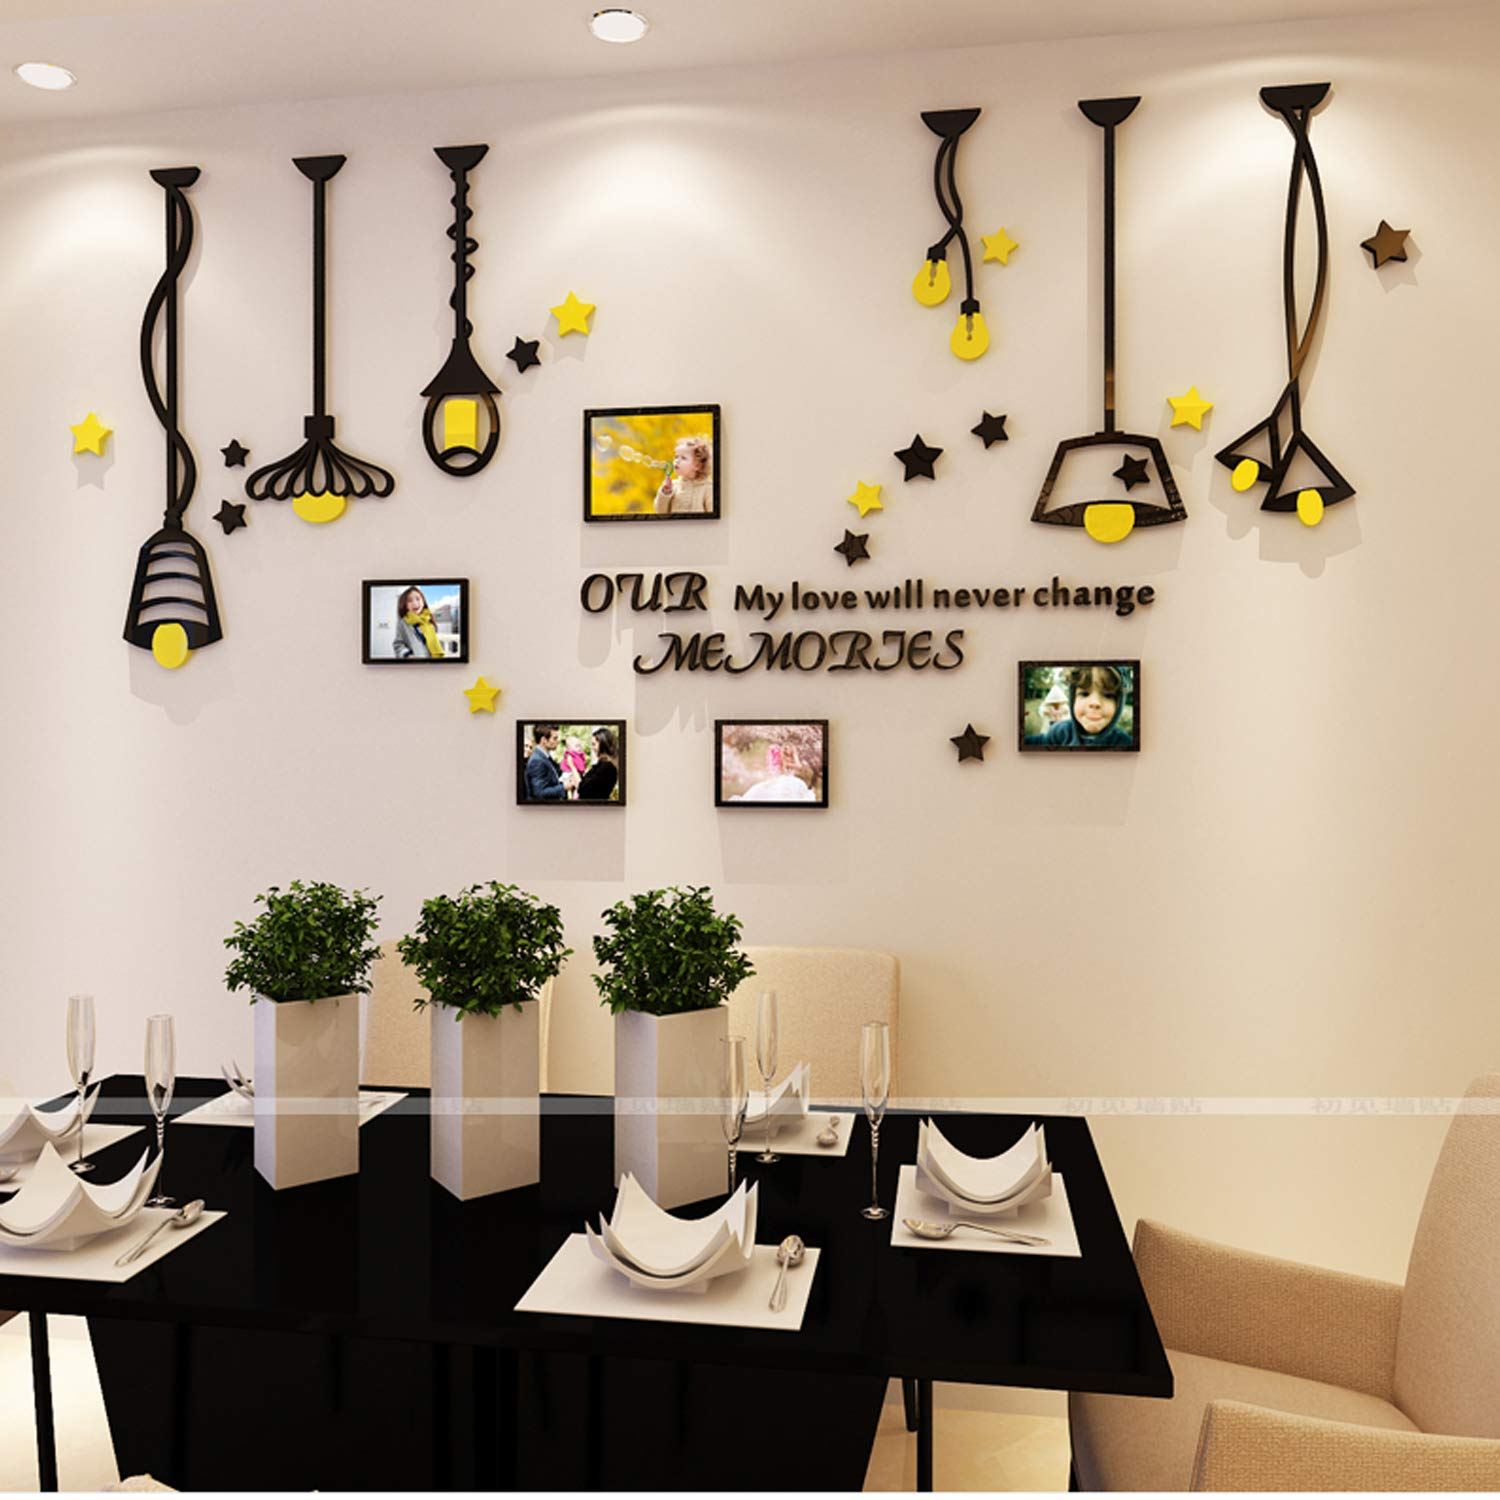 YINASI Acrylic Art 3D Wall Sticker, Black and Yellow Lamp Design with DIY Photo Frame, Wall Decors for Home, Living Room, Bedroom, Sofa Setting Wall, Dining Room